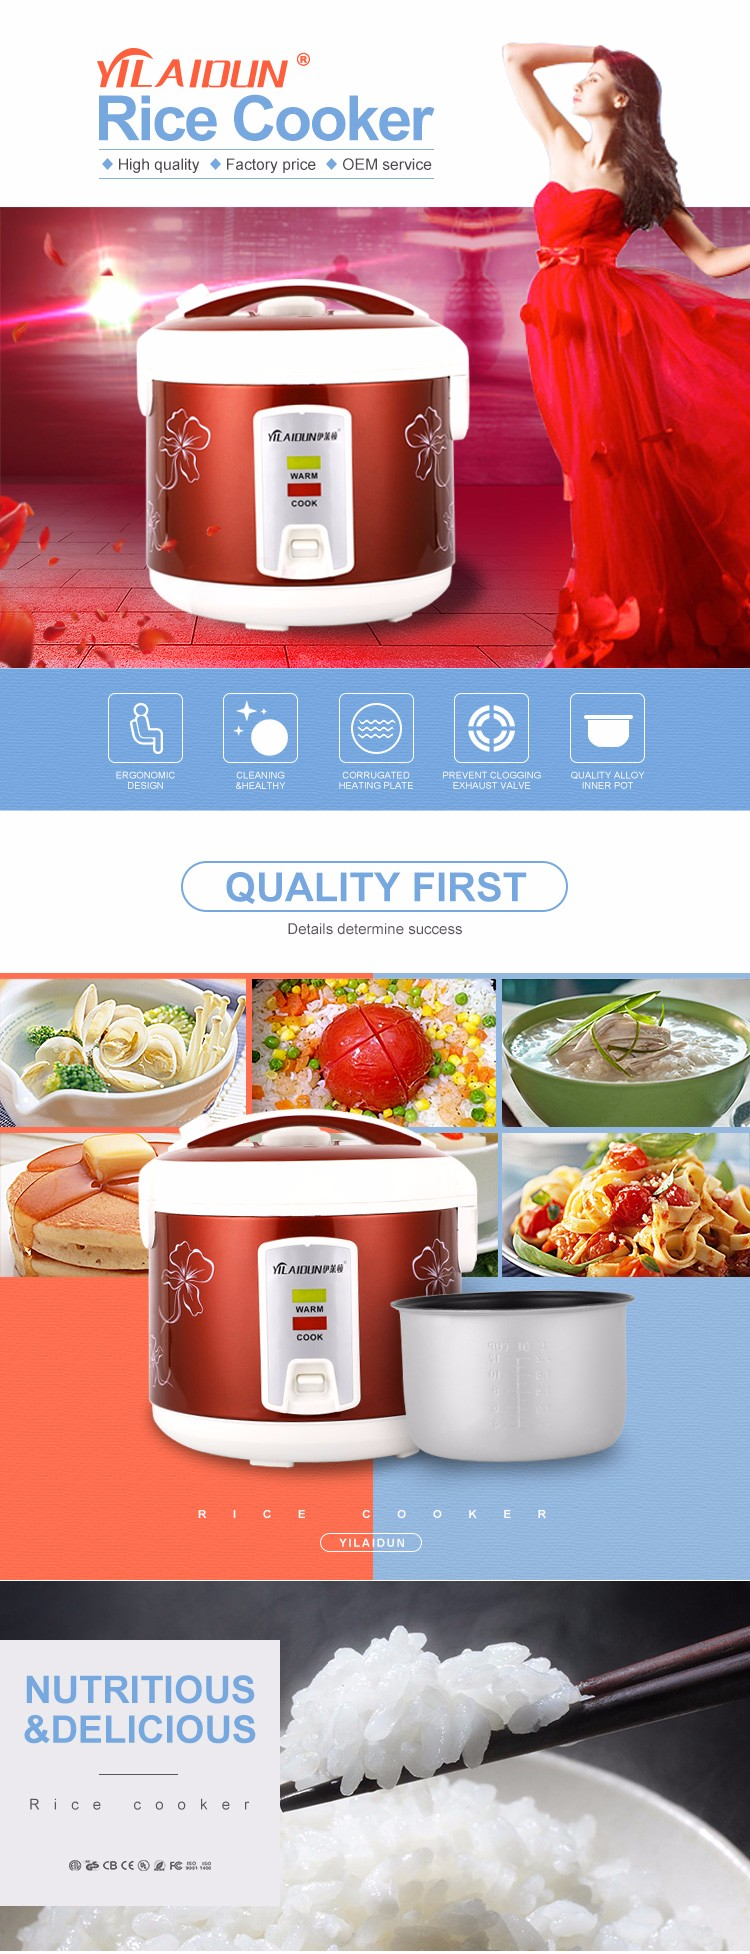 hight resolution of italian kitchen appliances red rice cooker electric diagram